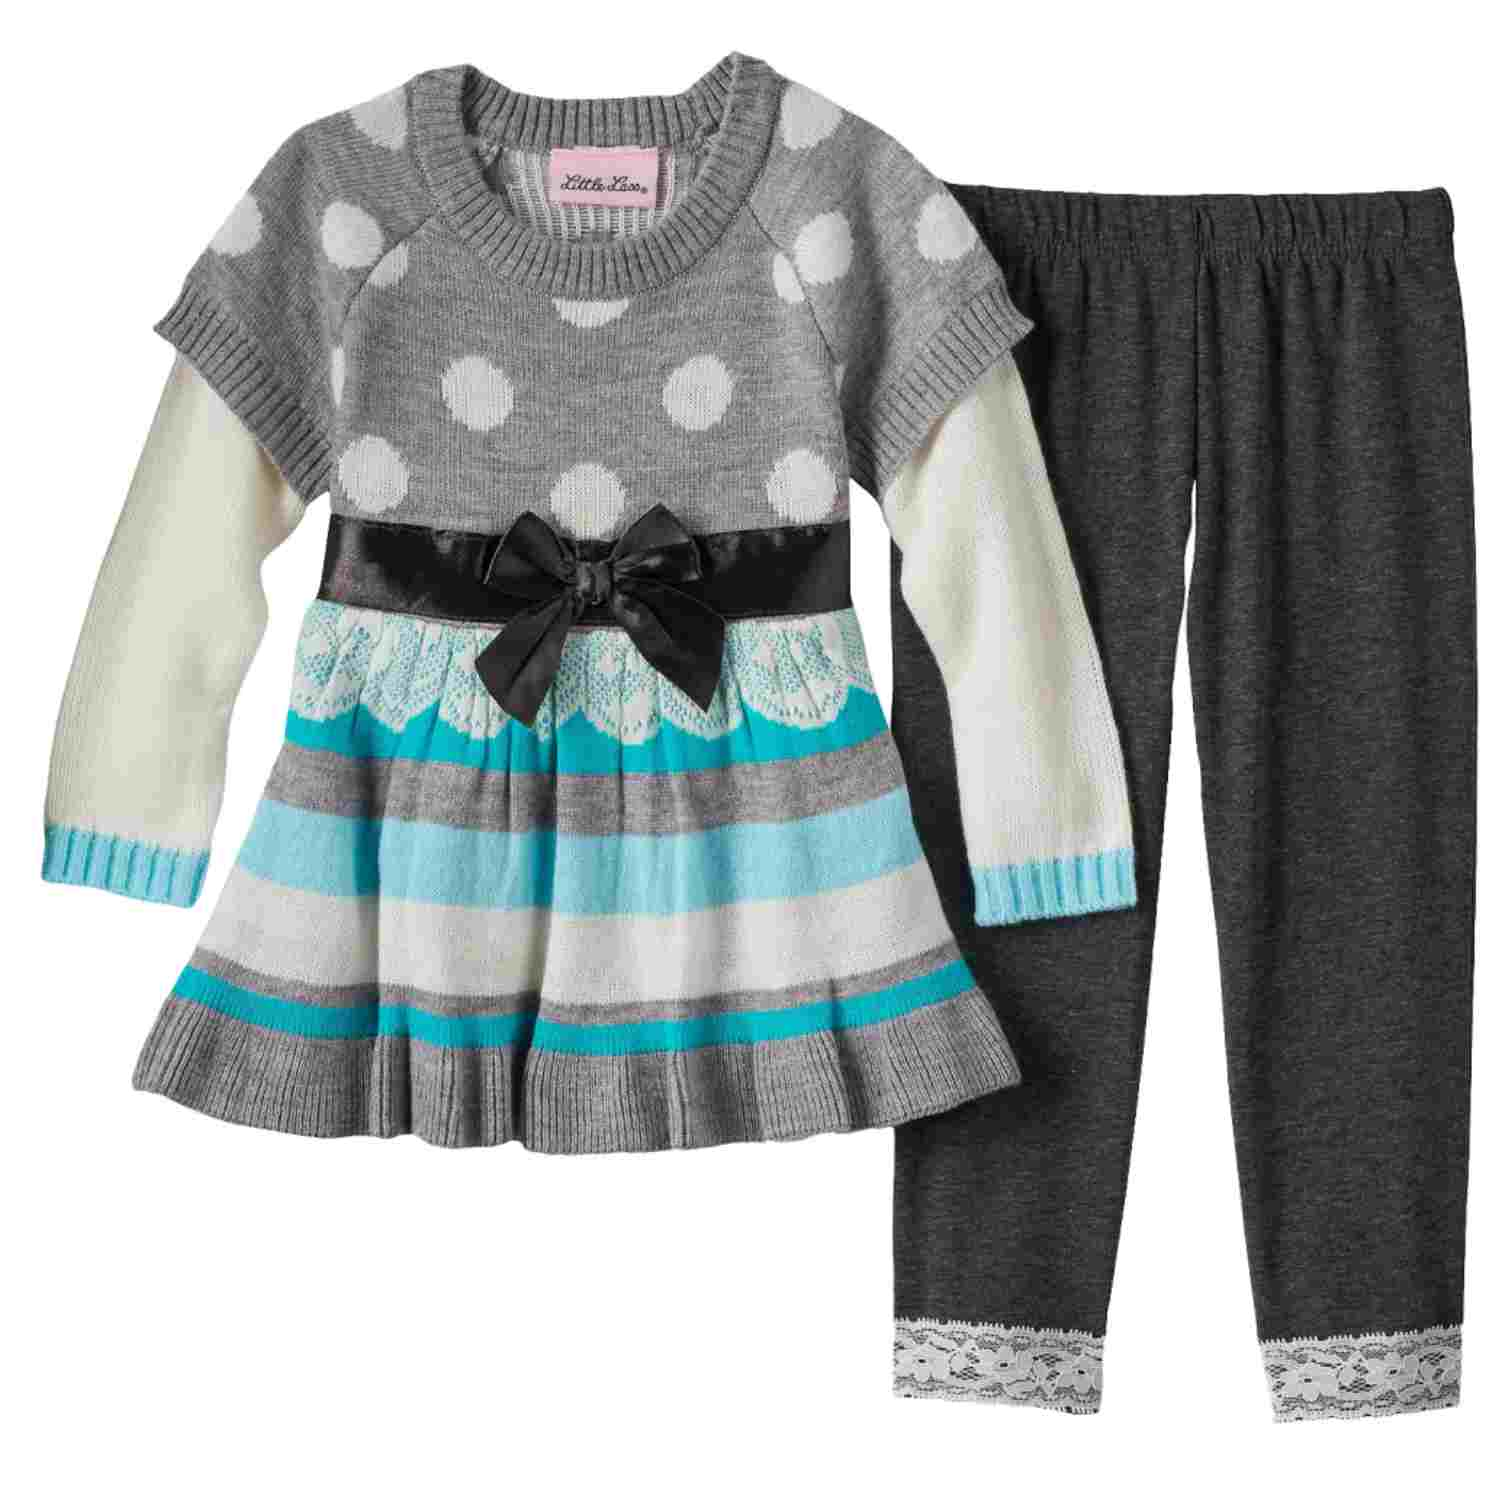 Little Lass Girls 2 Piece Dress Up Outfit Gray Polka Dot Sweater & Leggings Set